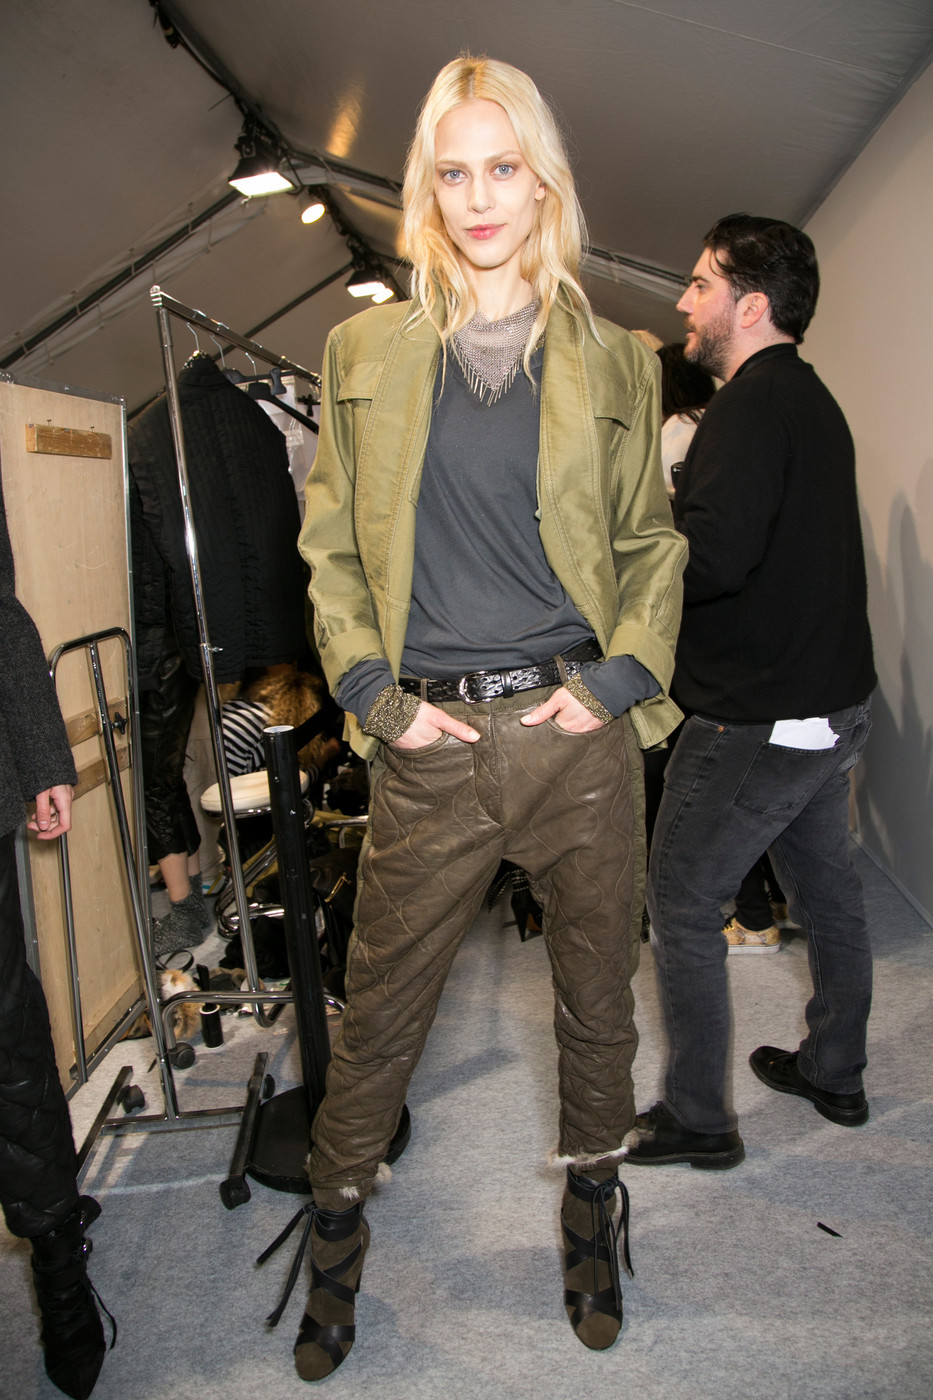 Isabel+Marant+Fall+2014+Backstage+MrIS-9R7BWBx.jpg